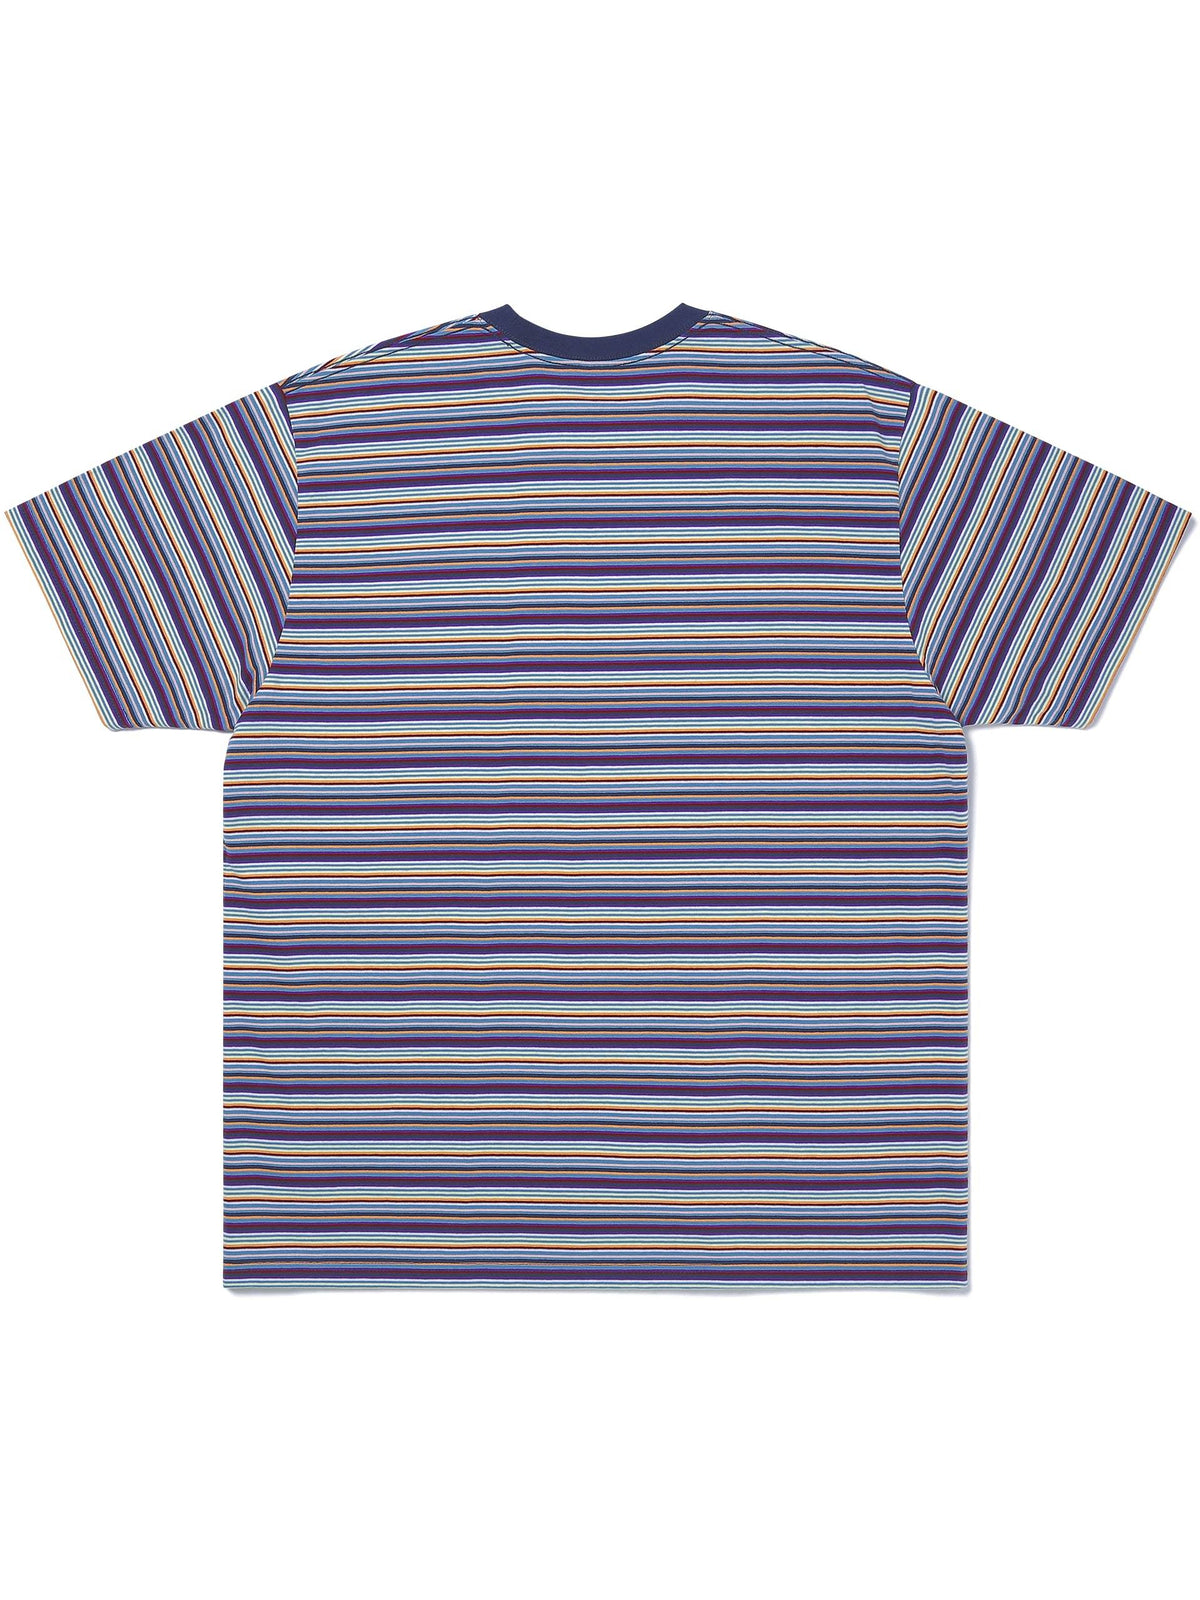 L-Logo Striped Tee T-Shirt